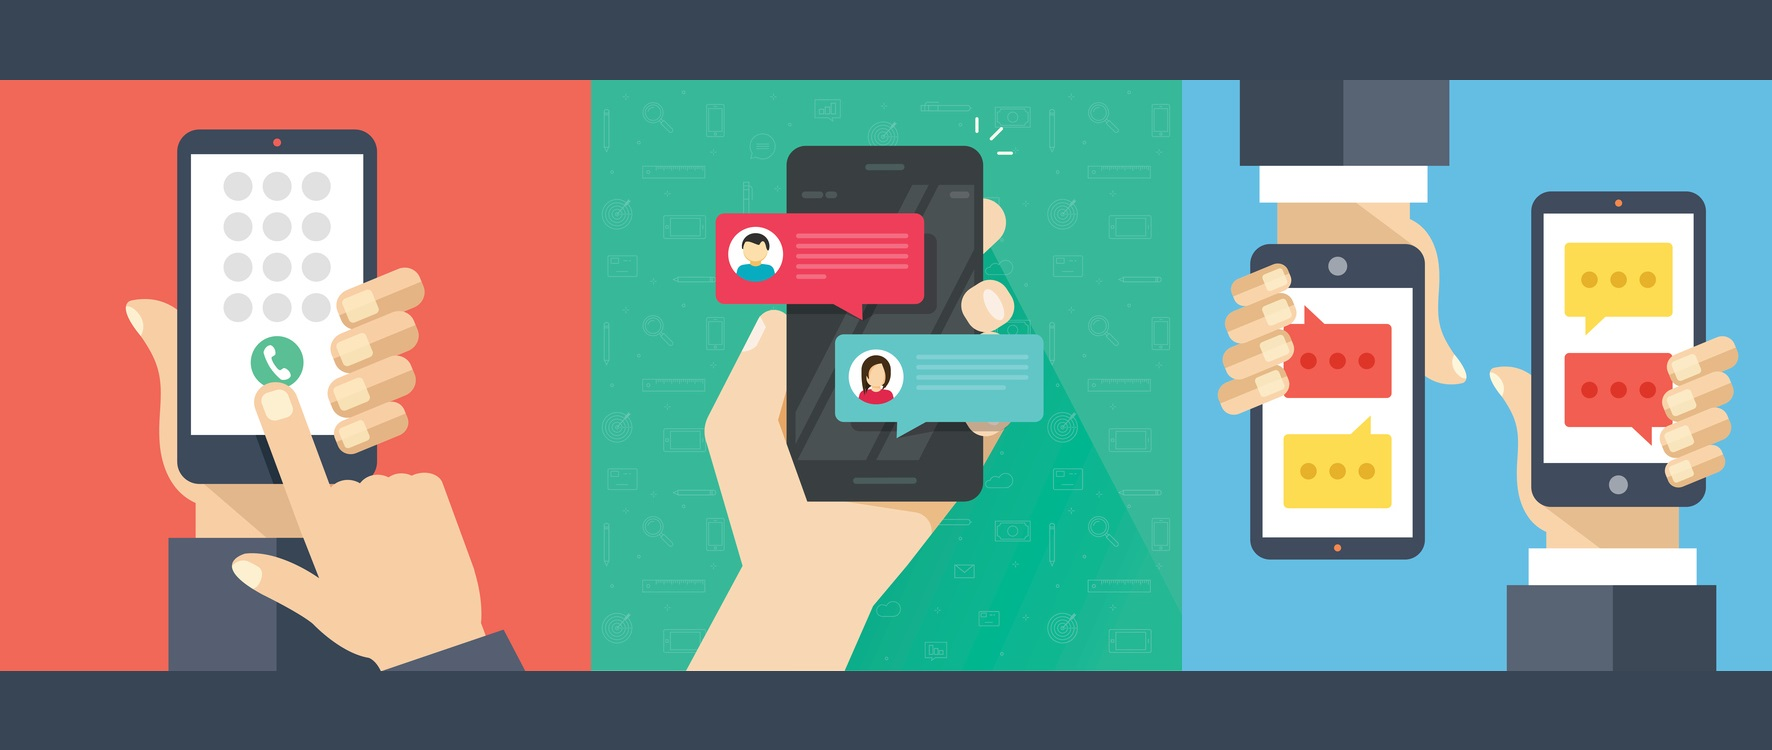 Mobile App Testing: Using Emulators, Real Devices, and Mobile Device Cloud Testing